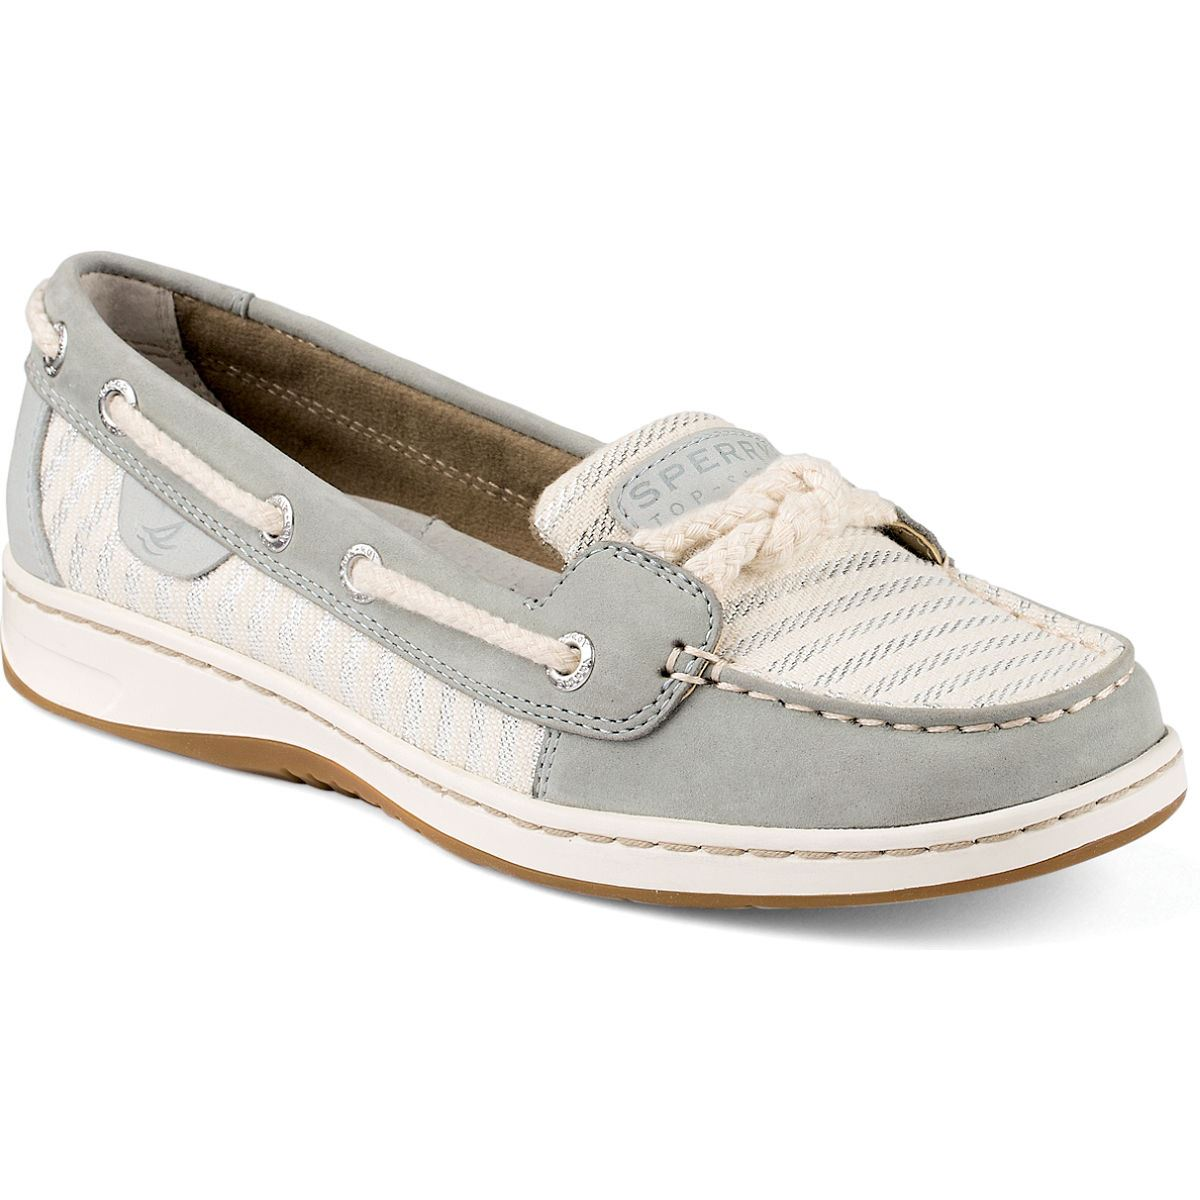 Sperry Top Sider Cherubfish Mariner Stripe Boat Shoes